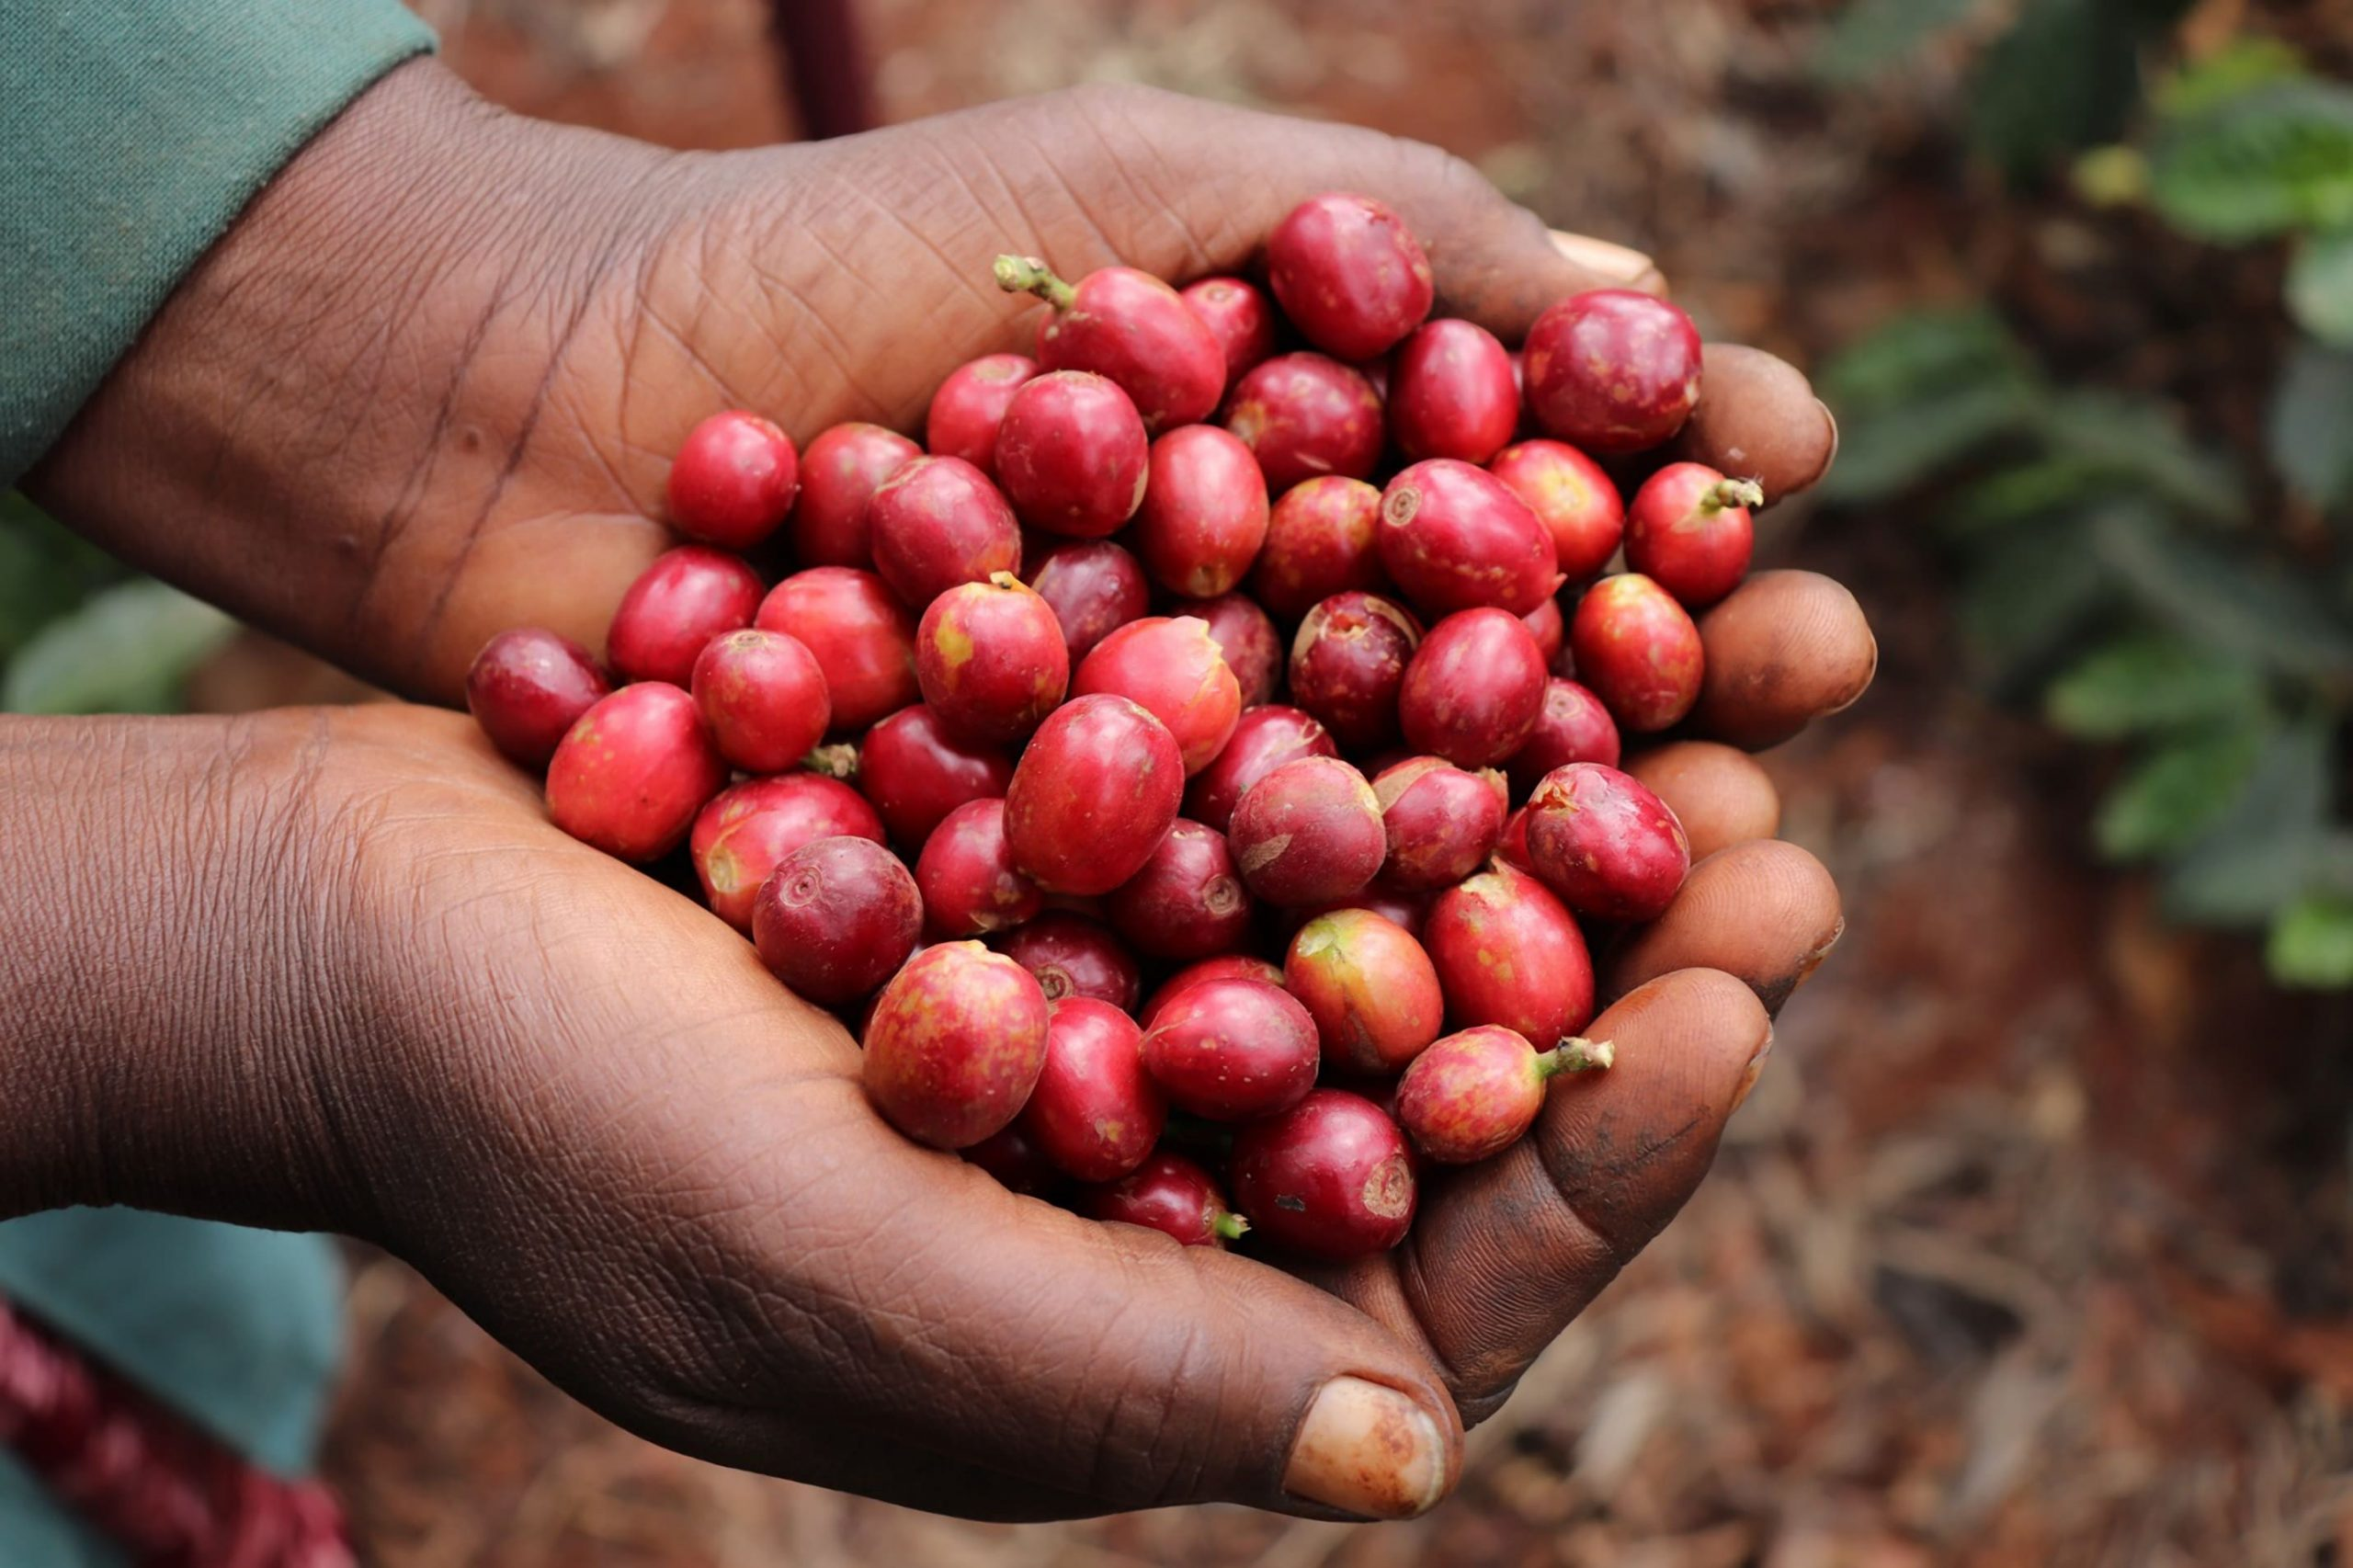 Kenya Red Cherries